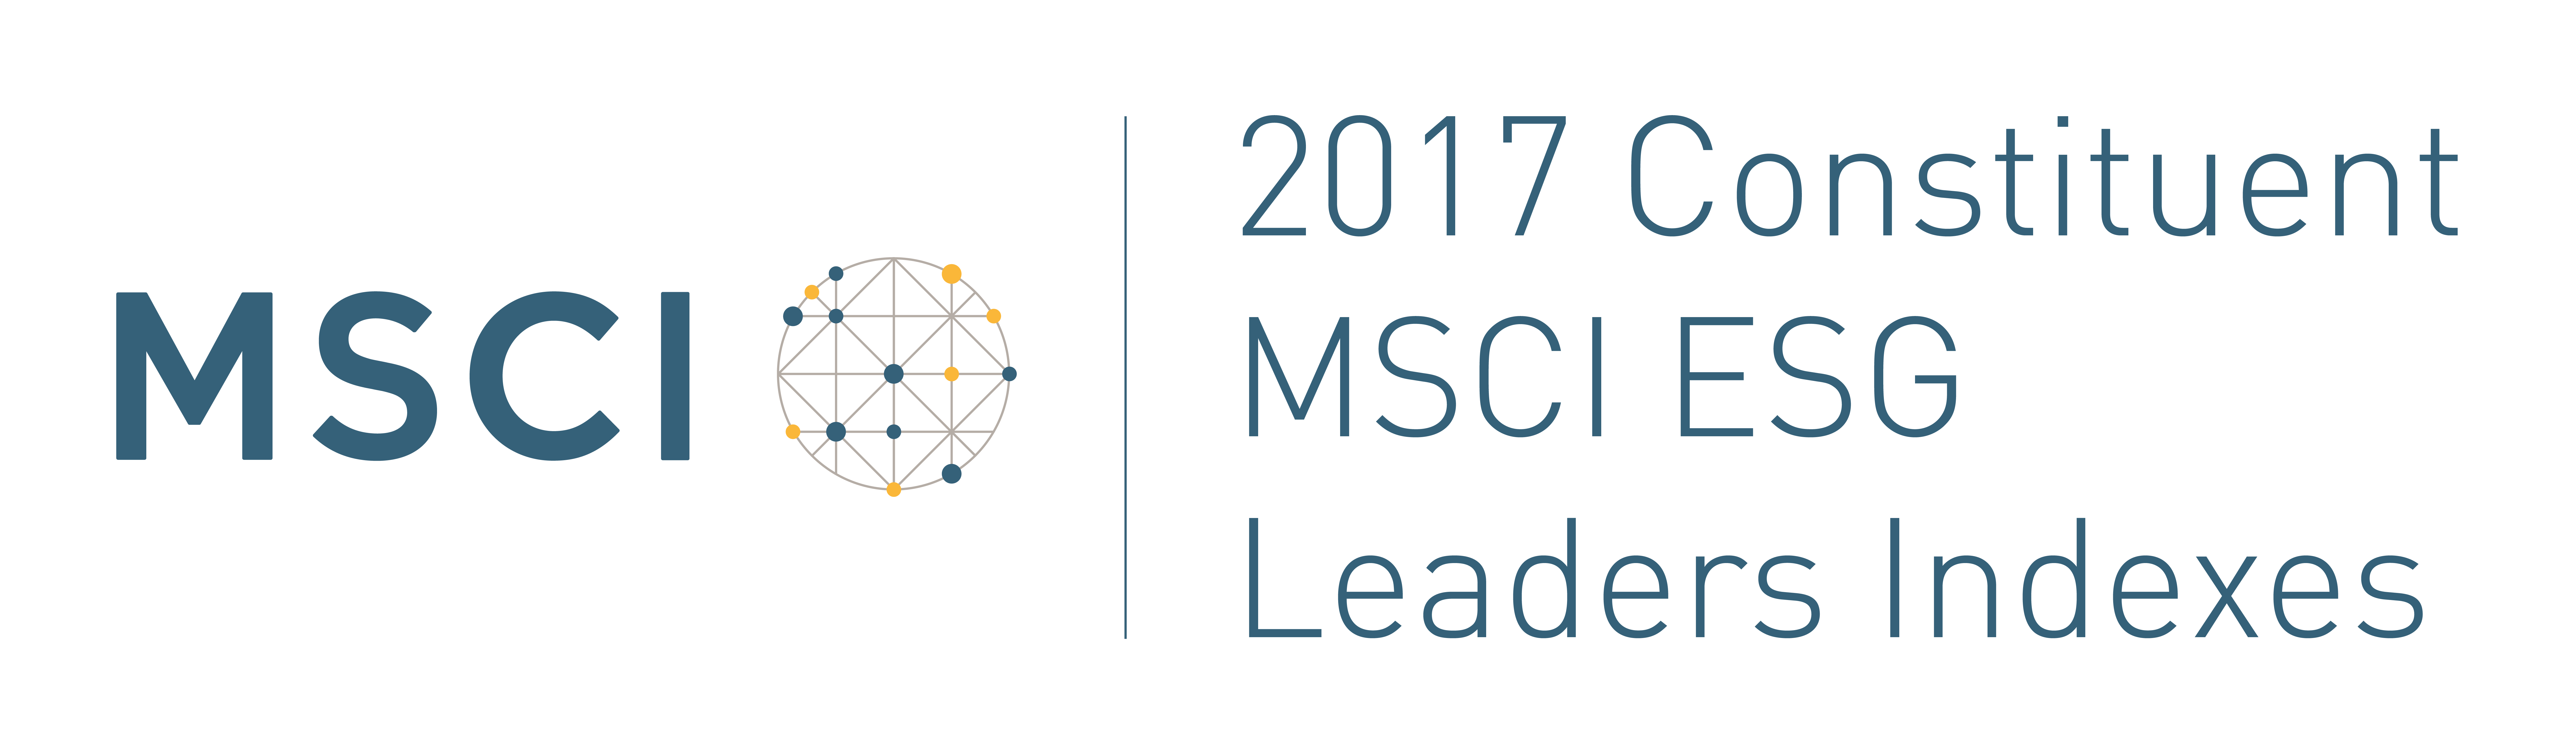 2017 Constituent MSCI ESG Leaders Indexes